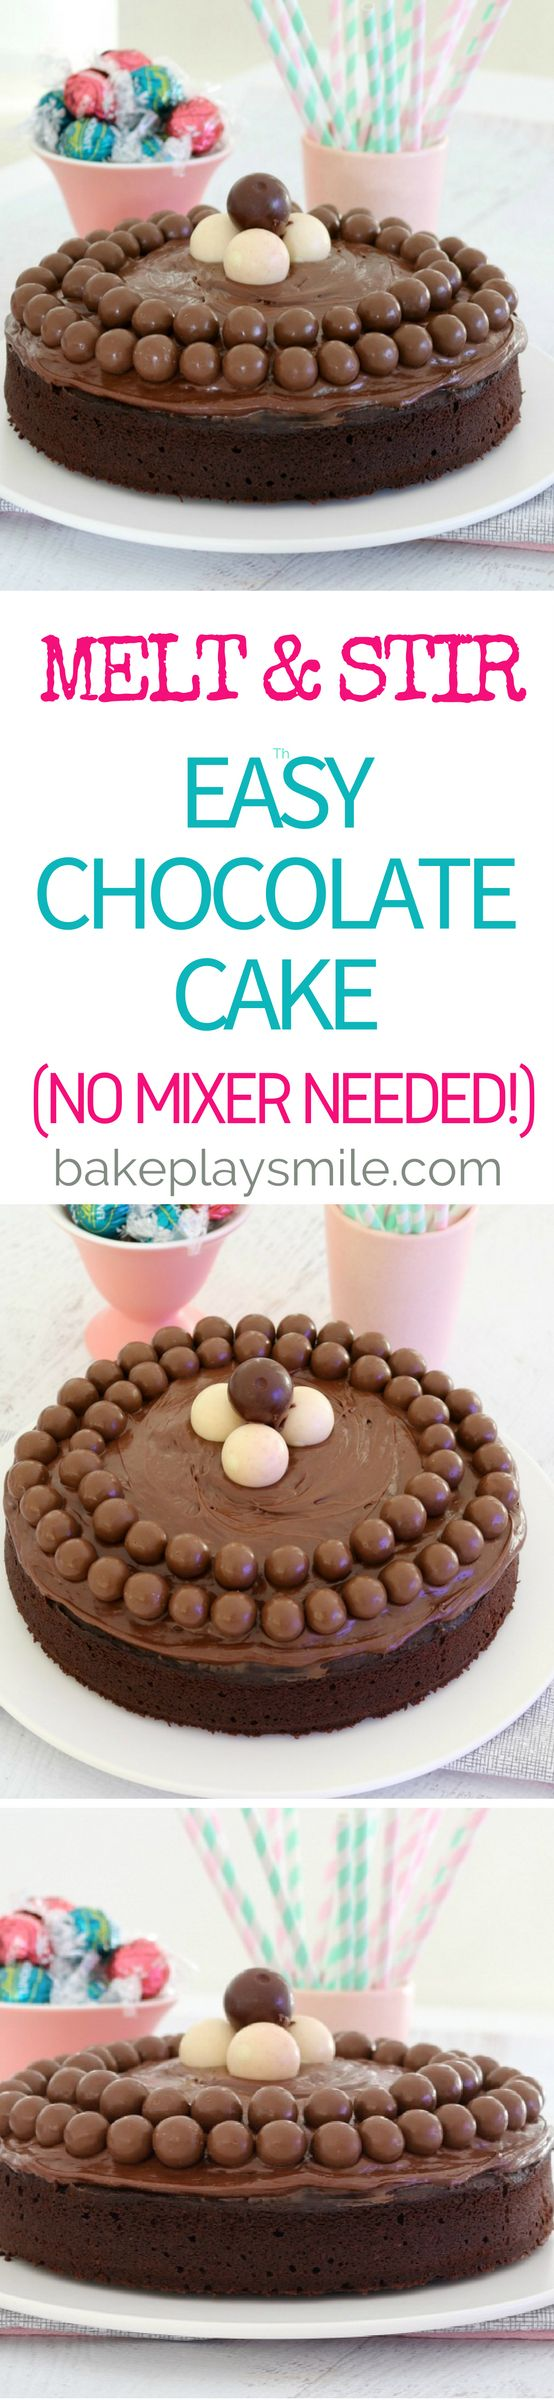 THERMOMIX VERSION! Donna Hay's Melt & Mix Chocolate Cake is the answer to your cake making dilemmas! It's the most deliciously moist cake. #melt #mix #chocolate #cake #baking #easy #thermomix #conventional